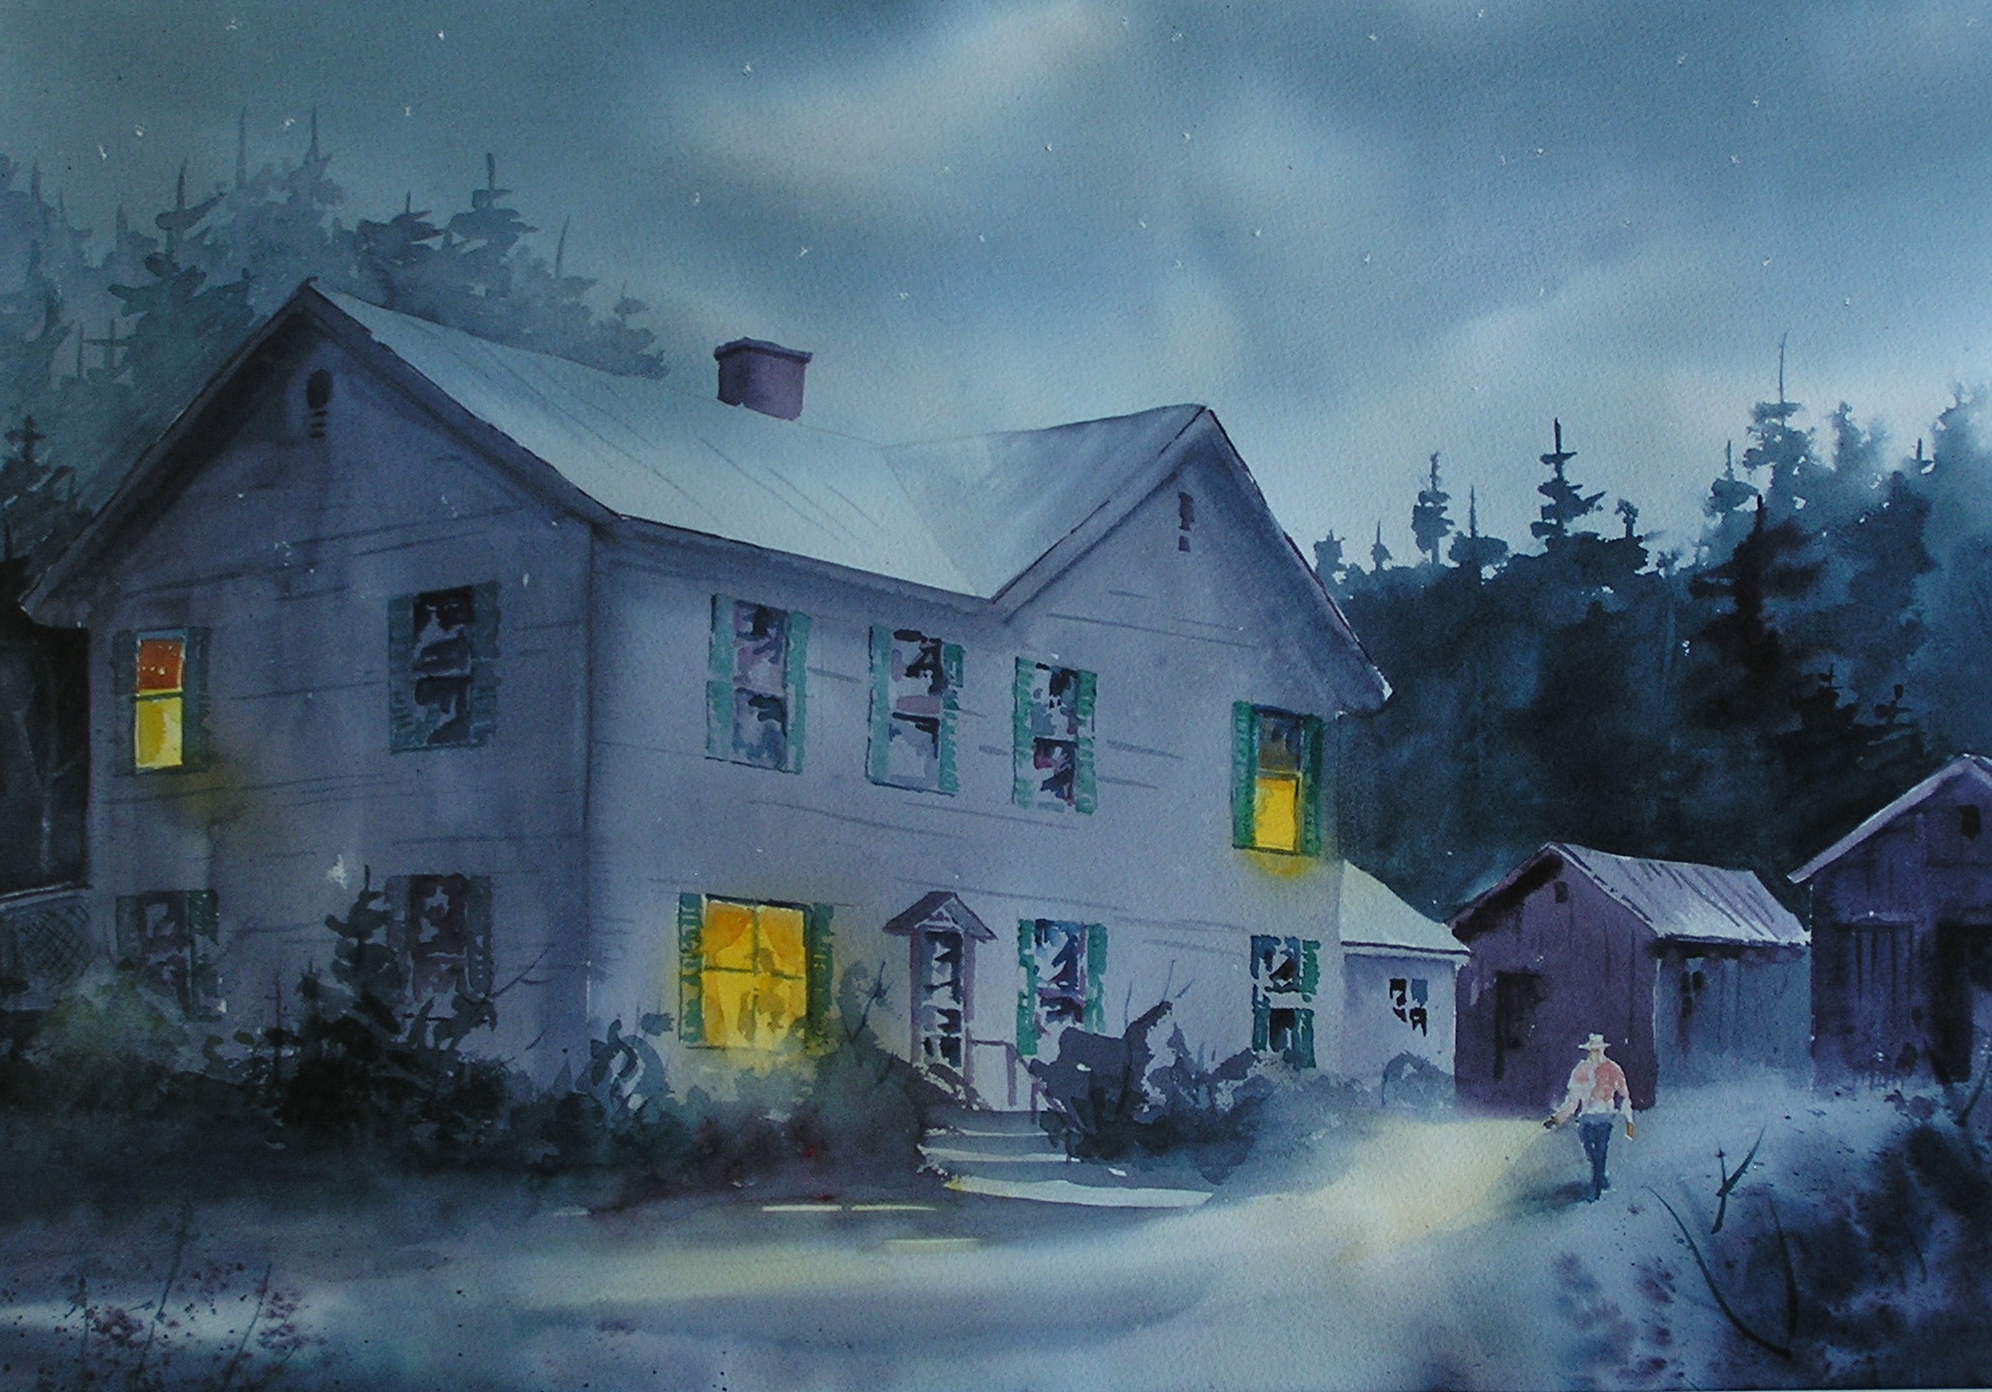 Night scene of a farmhouse